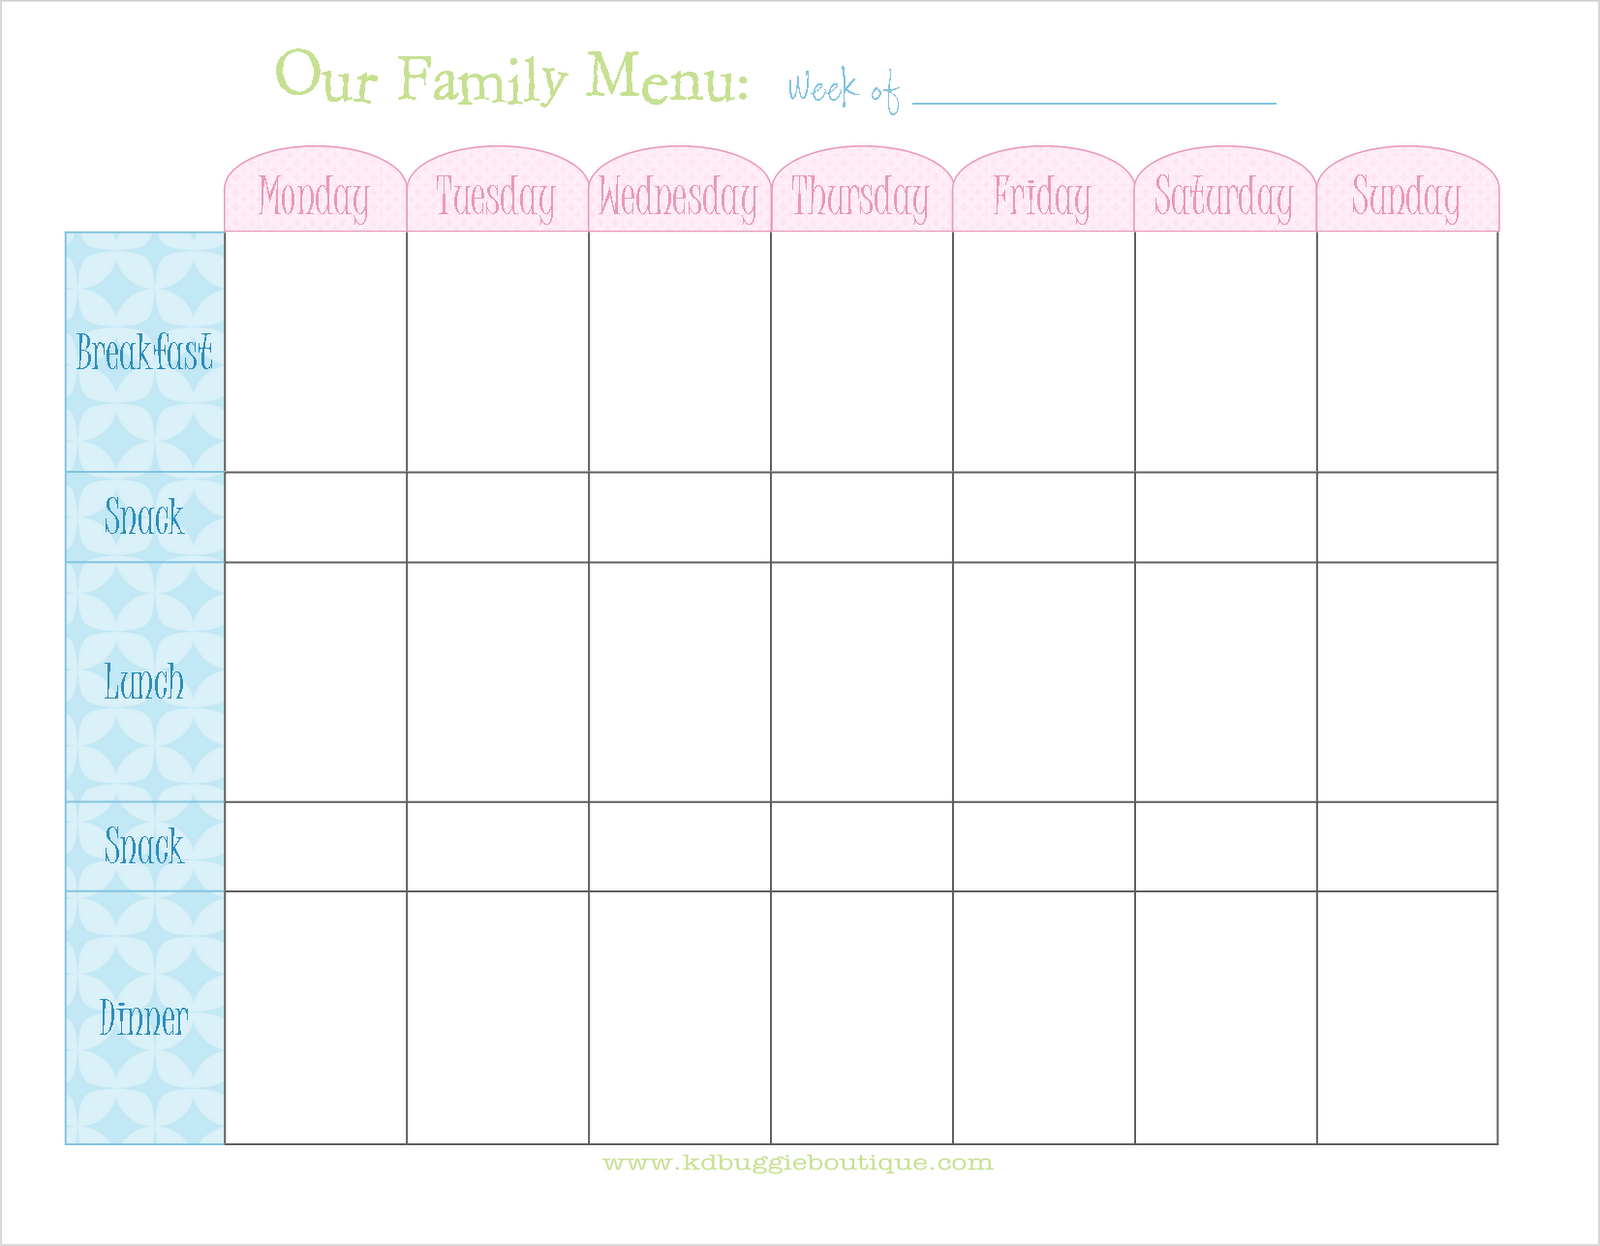 The perfect menu planner for when you arent sure what to cook! This brilliant allinone menu planner is easy to use and FREE!